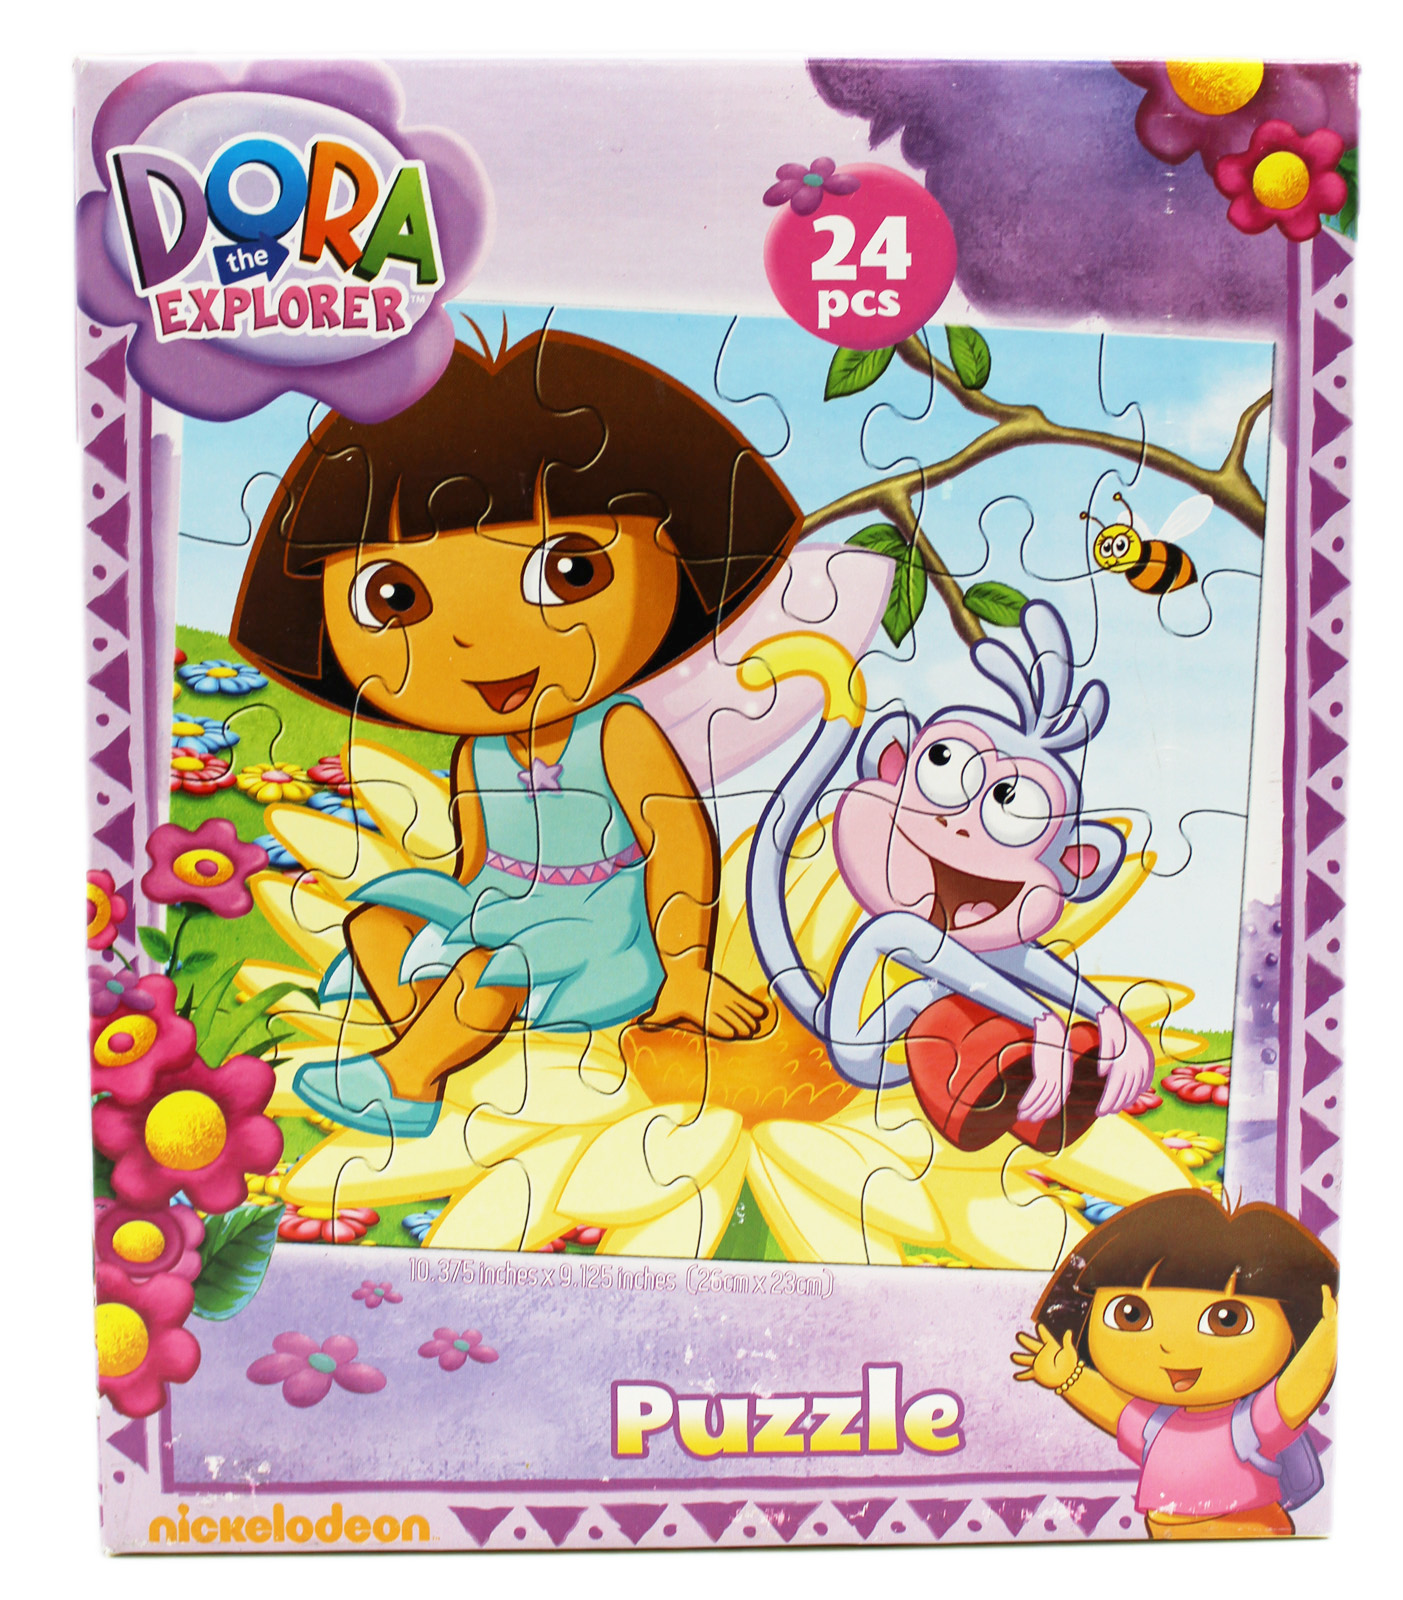 Dora the Explorer Boots and Dora on a Flower Kids Jigsaw Puzzle (24pc) by